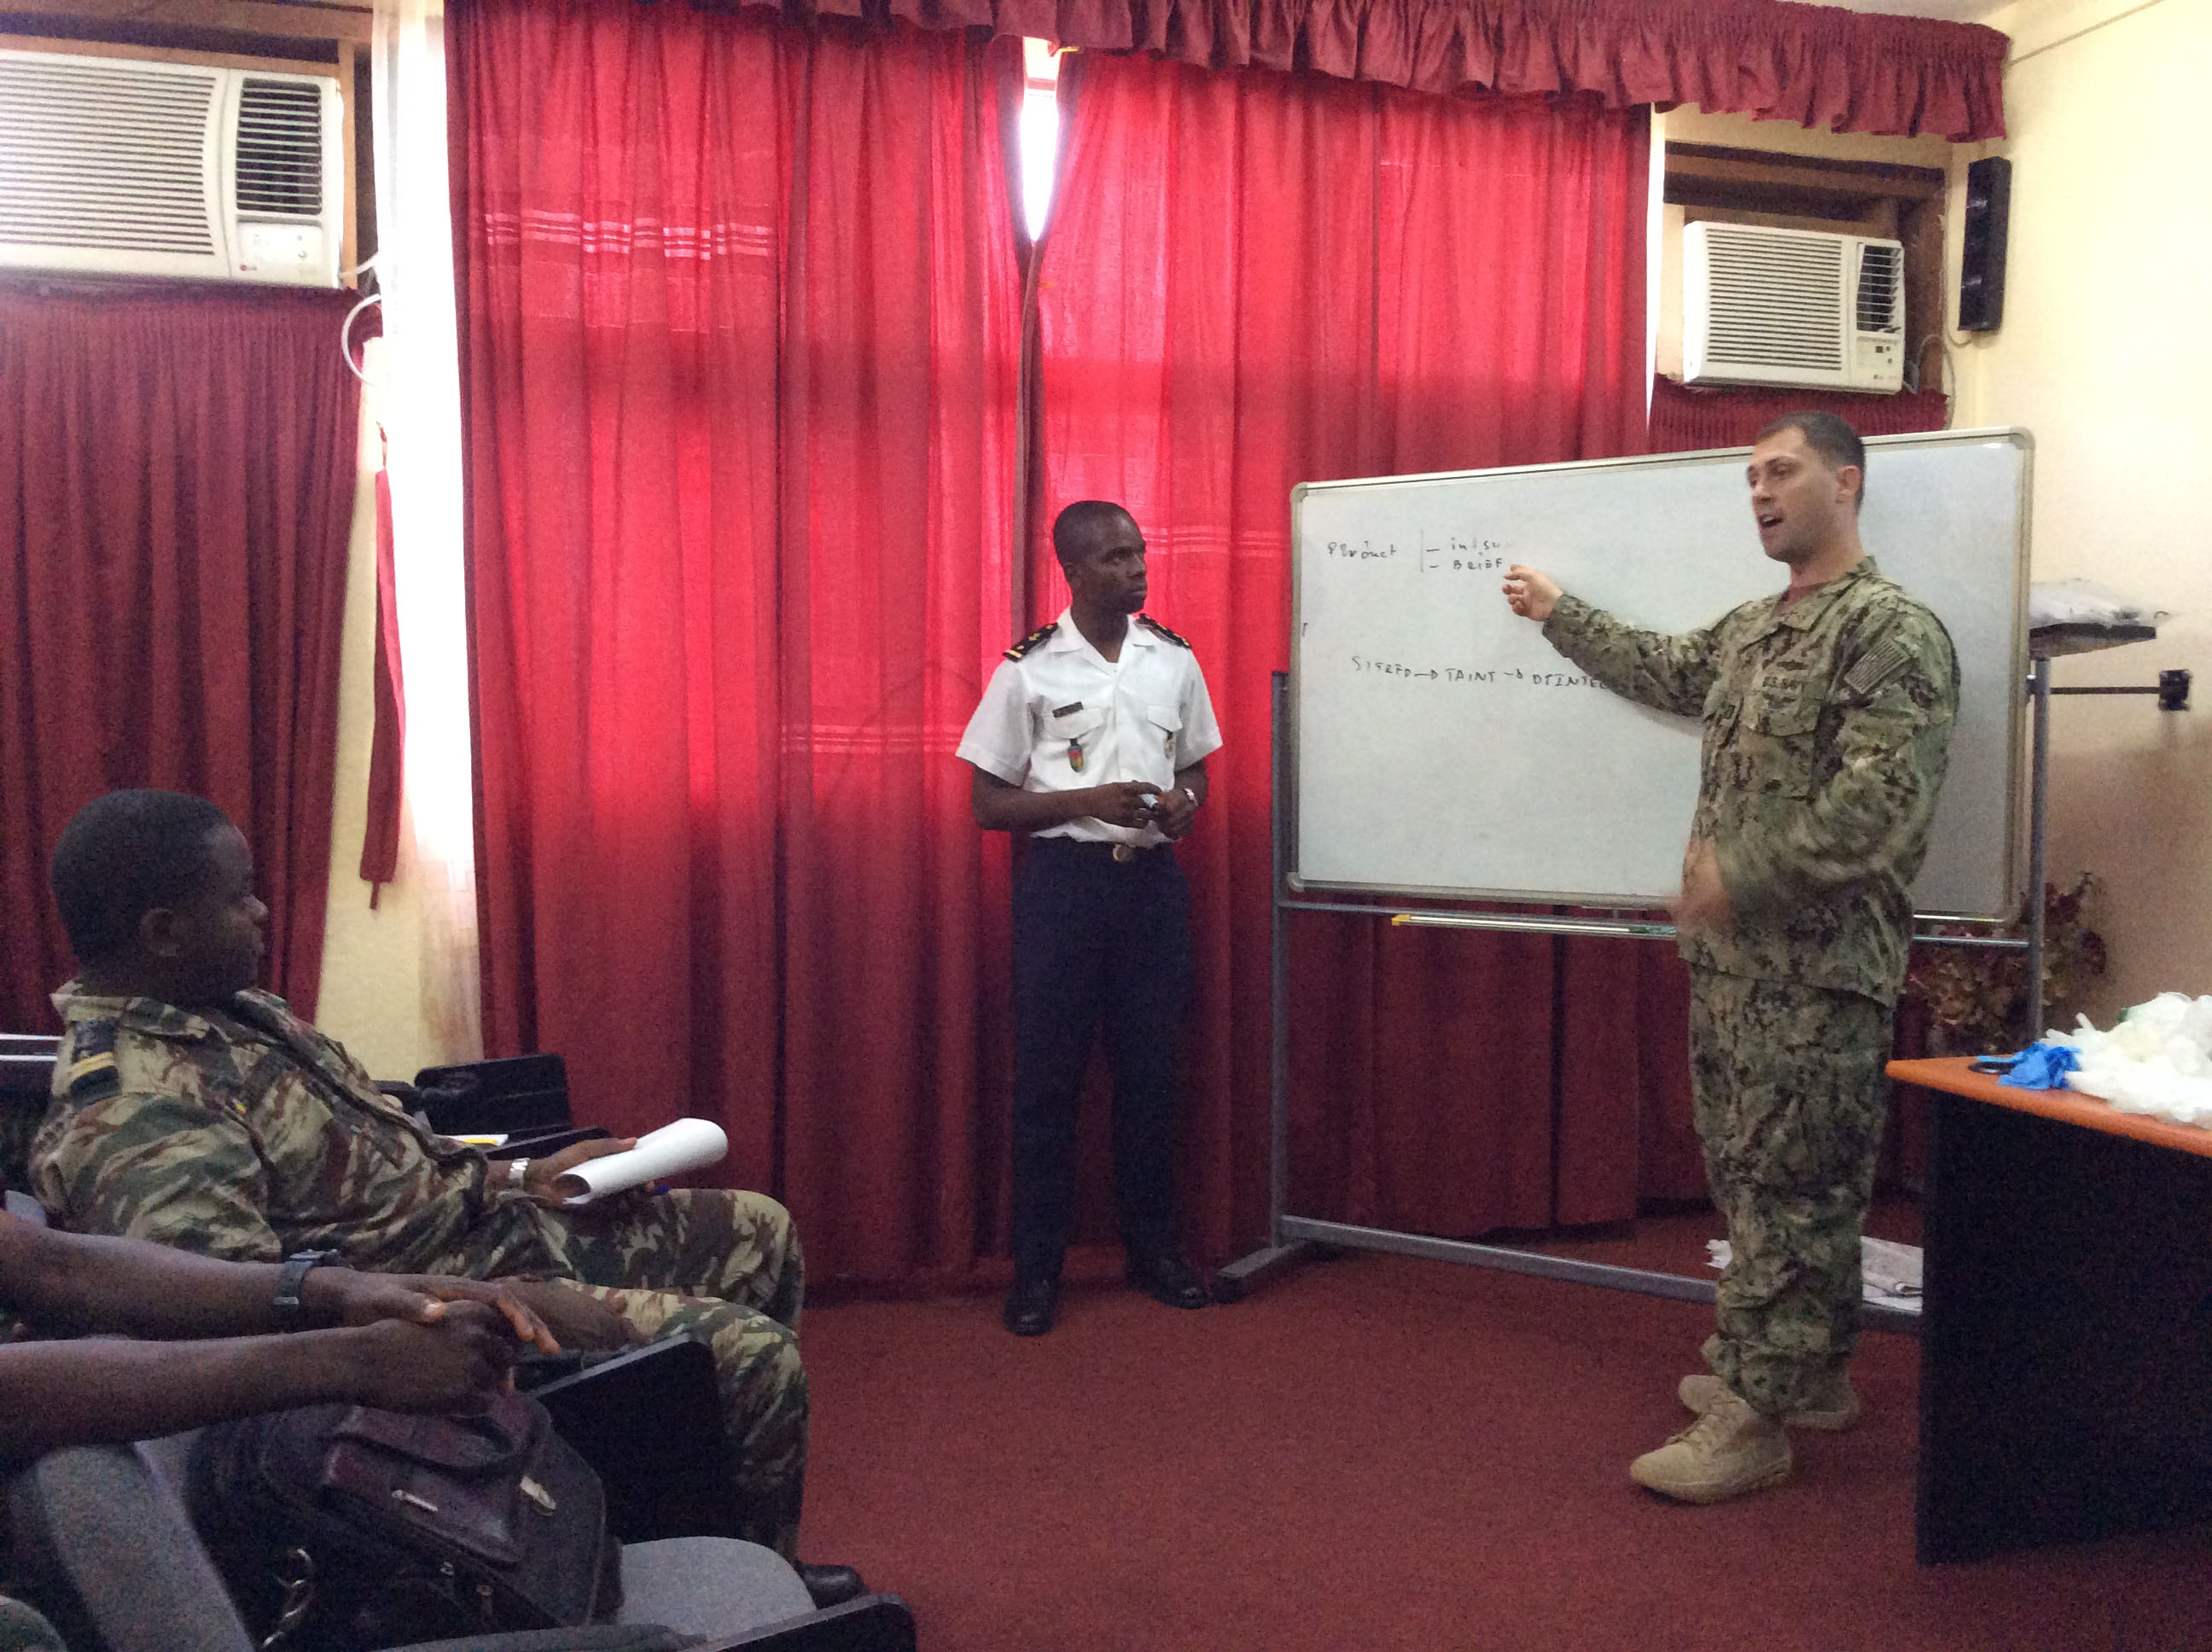 150923-M-ZZ999-300 DOUALA, Cameroon  (Sept. 23, 2015) Lt. Chris Jordan, intelligence officer for Commander, Task Force 68 (CTF 68) discusses the basic intel cycle to Cameroon military forces Sept. 23, 2015. The training was a coordinated effort between CTF 68 and Marines from U.S. Marine Corps Forces Europe and Africa and Special Purpose Marine Air Ground Task Force-Crisis Response-Africa. (U.S. Marine Corps photo by Maj. Oliver Talbott/Released)